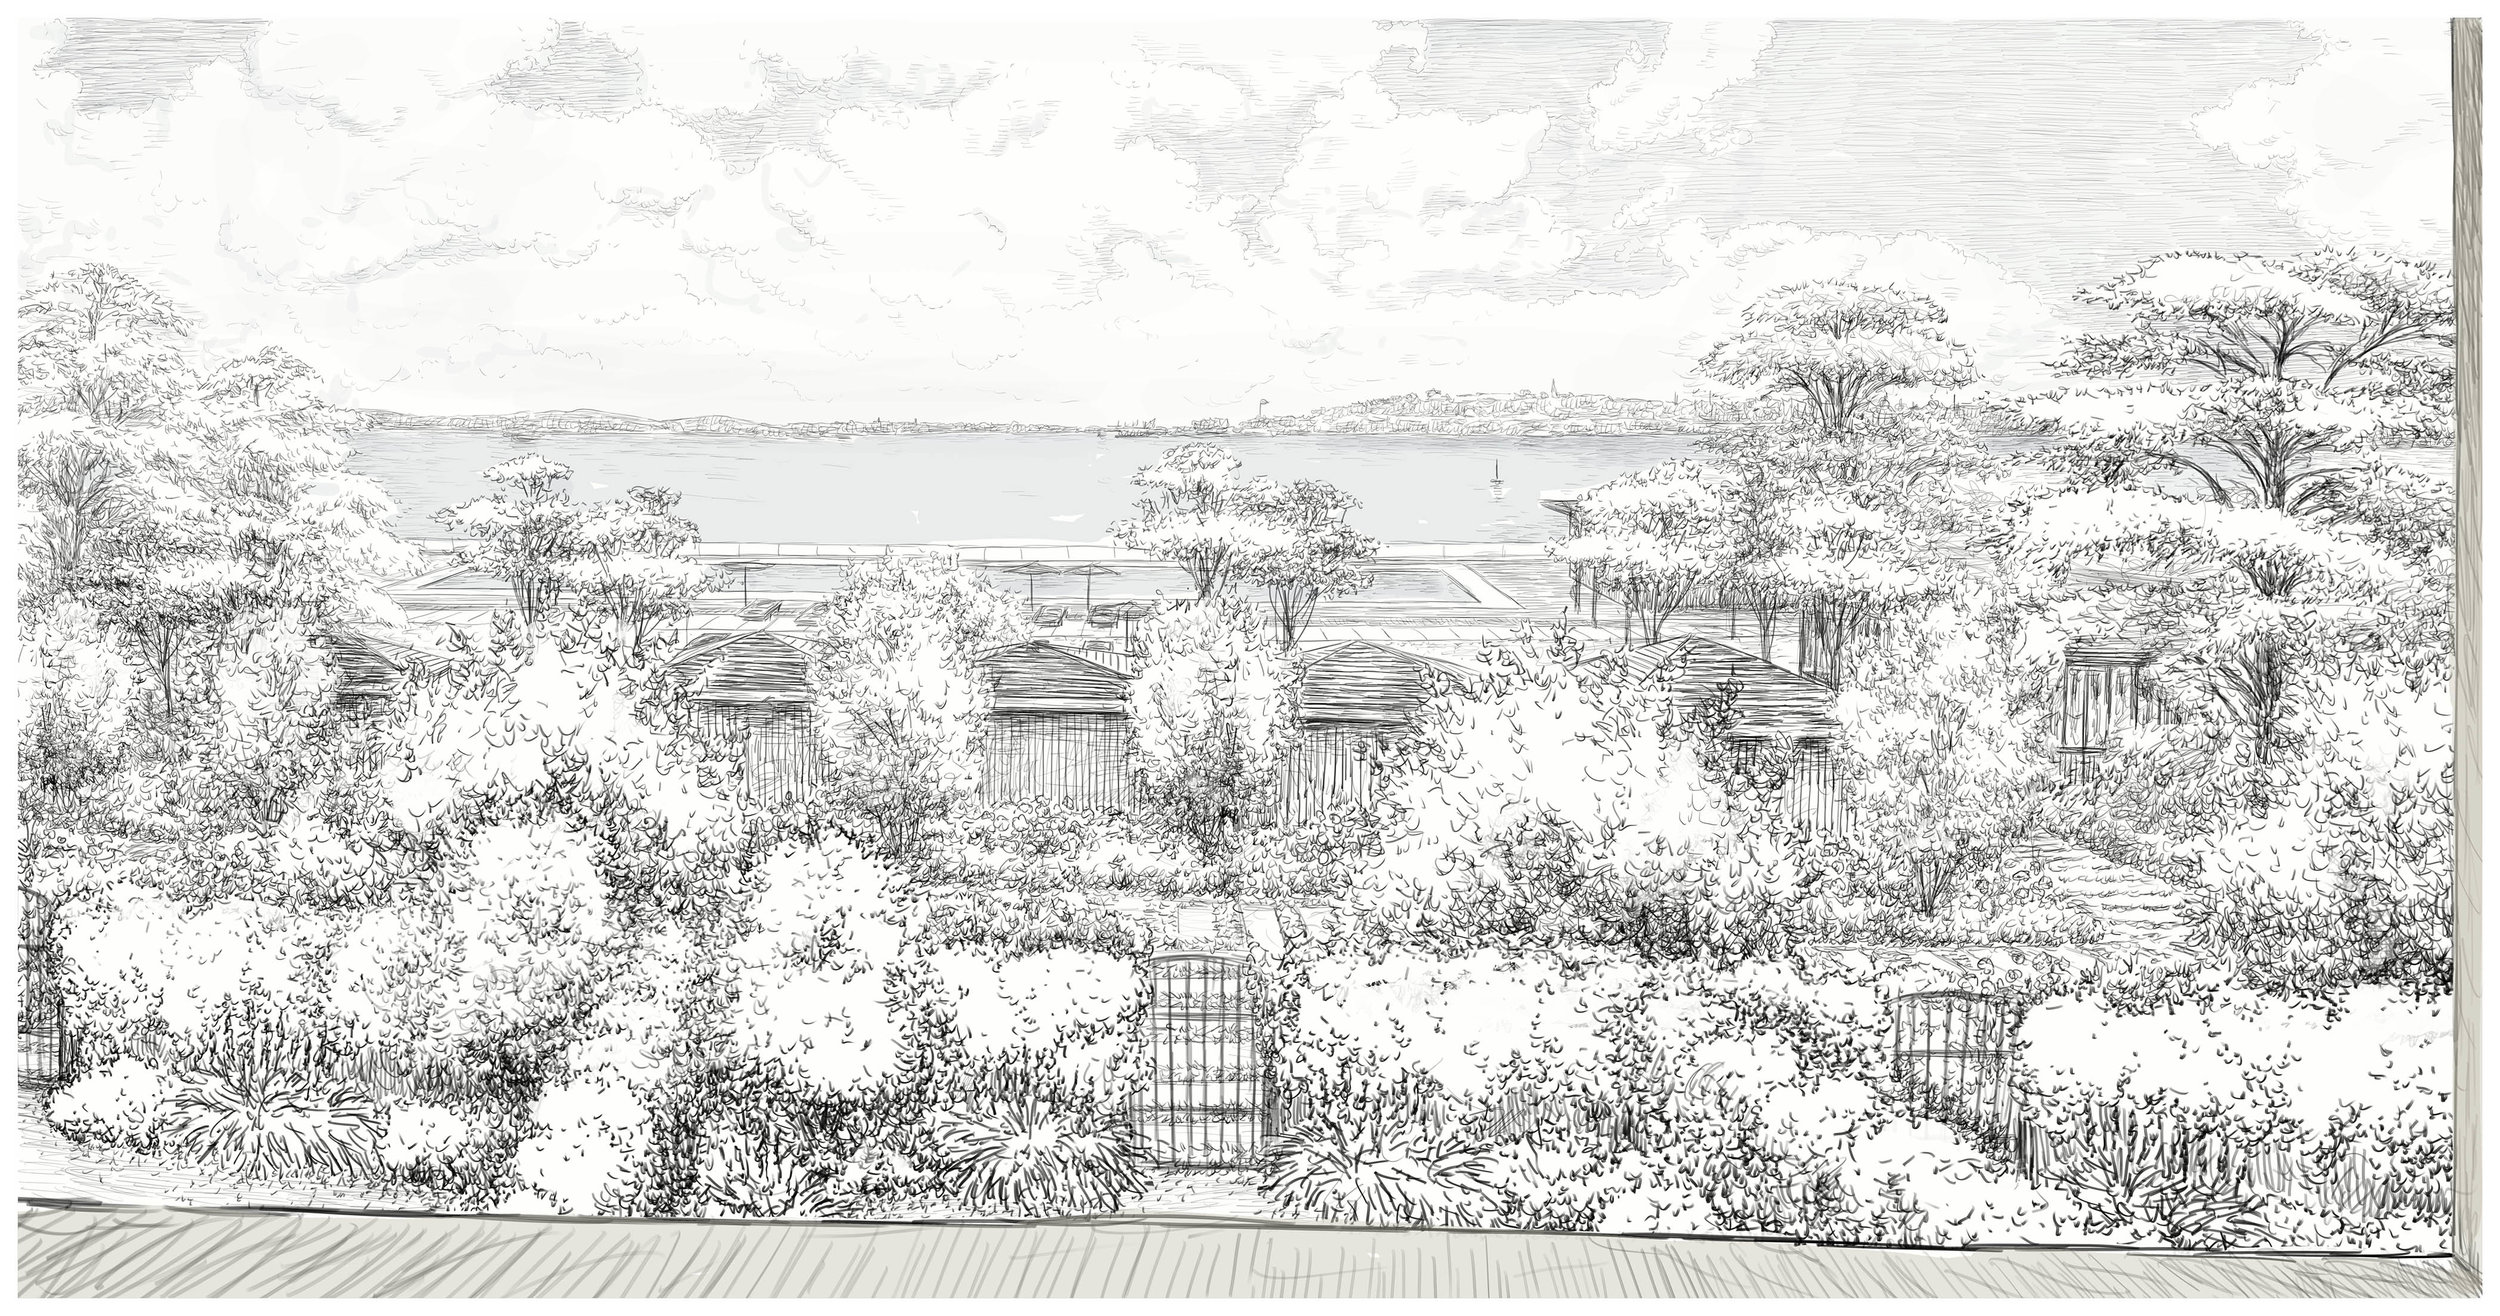 view from building 1 of pool grounds (drawn by massimo milano / enea landscape architecture)